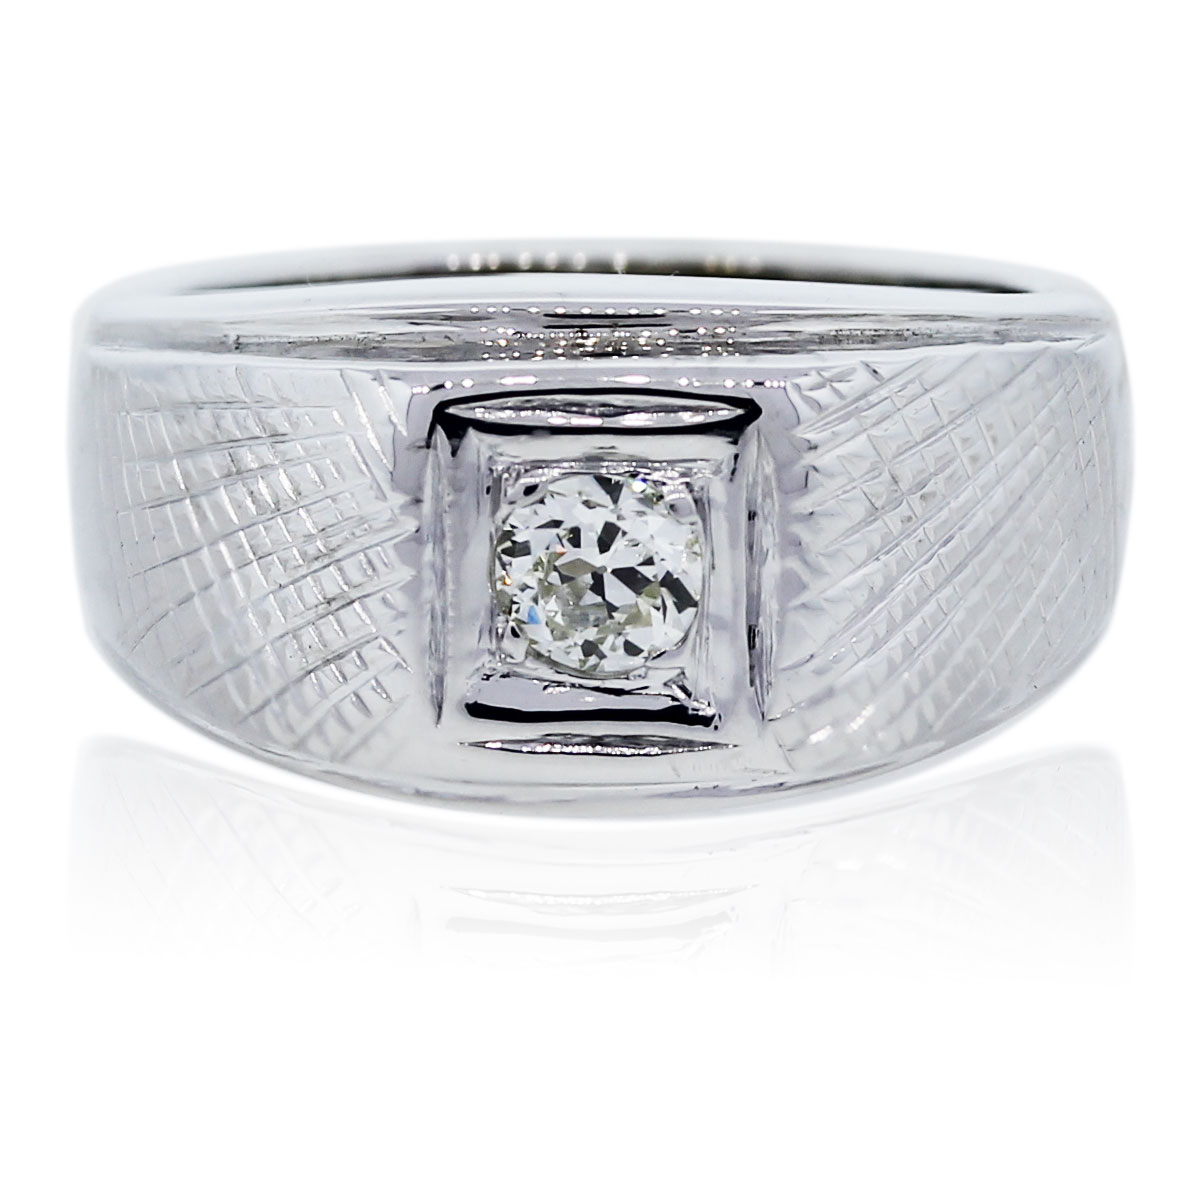 You are viewing this 14K White Gold and Diamond Gents Ring!